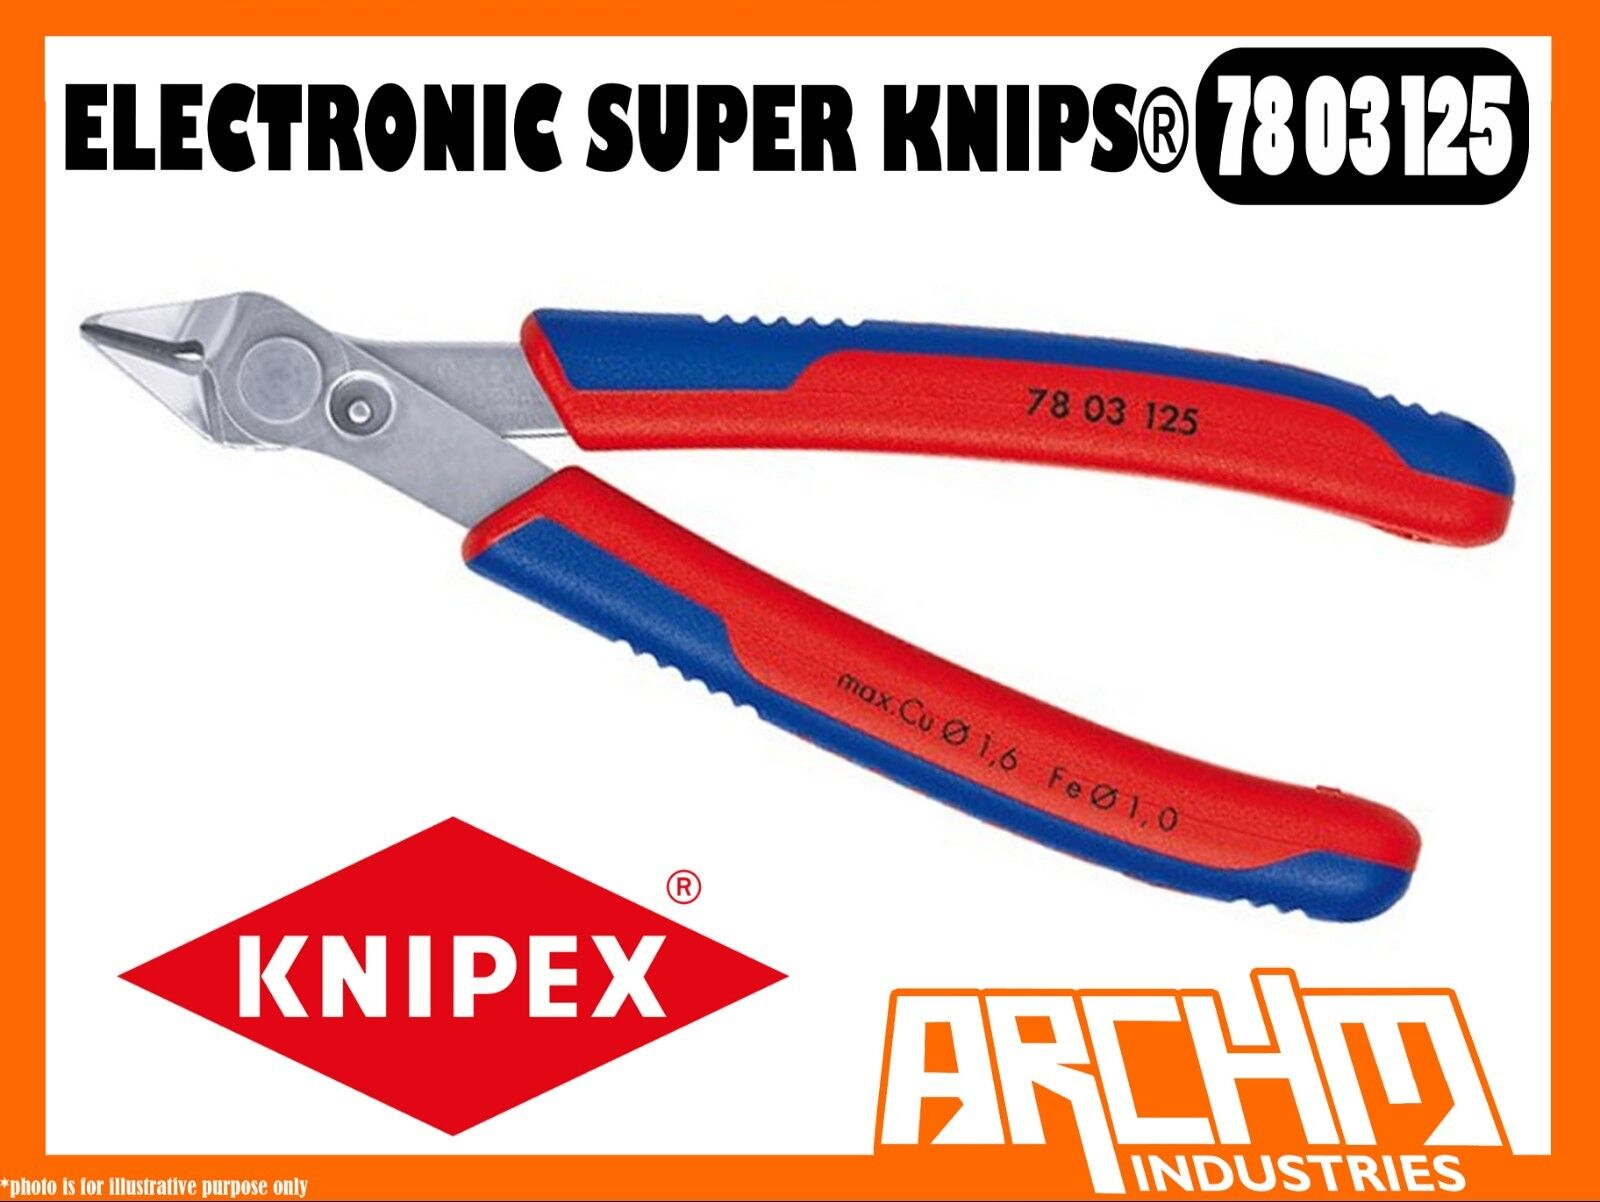 KNIPEX 7803125 - ELECTRONIC SUPER KNIPS® - 125MM - PRECISION PLIERS CUTTING EDGE